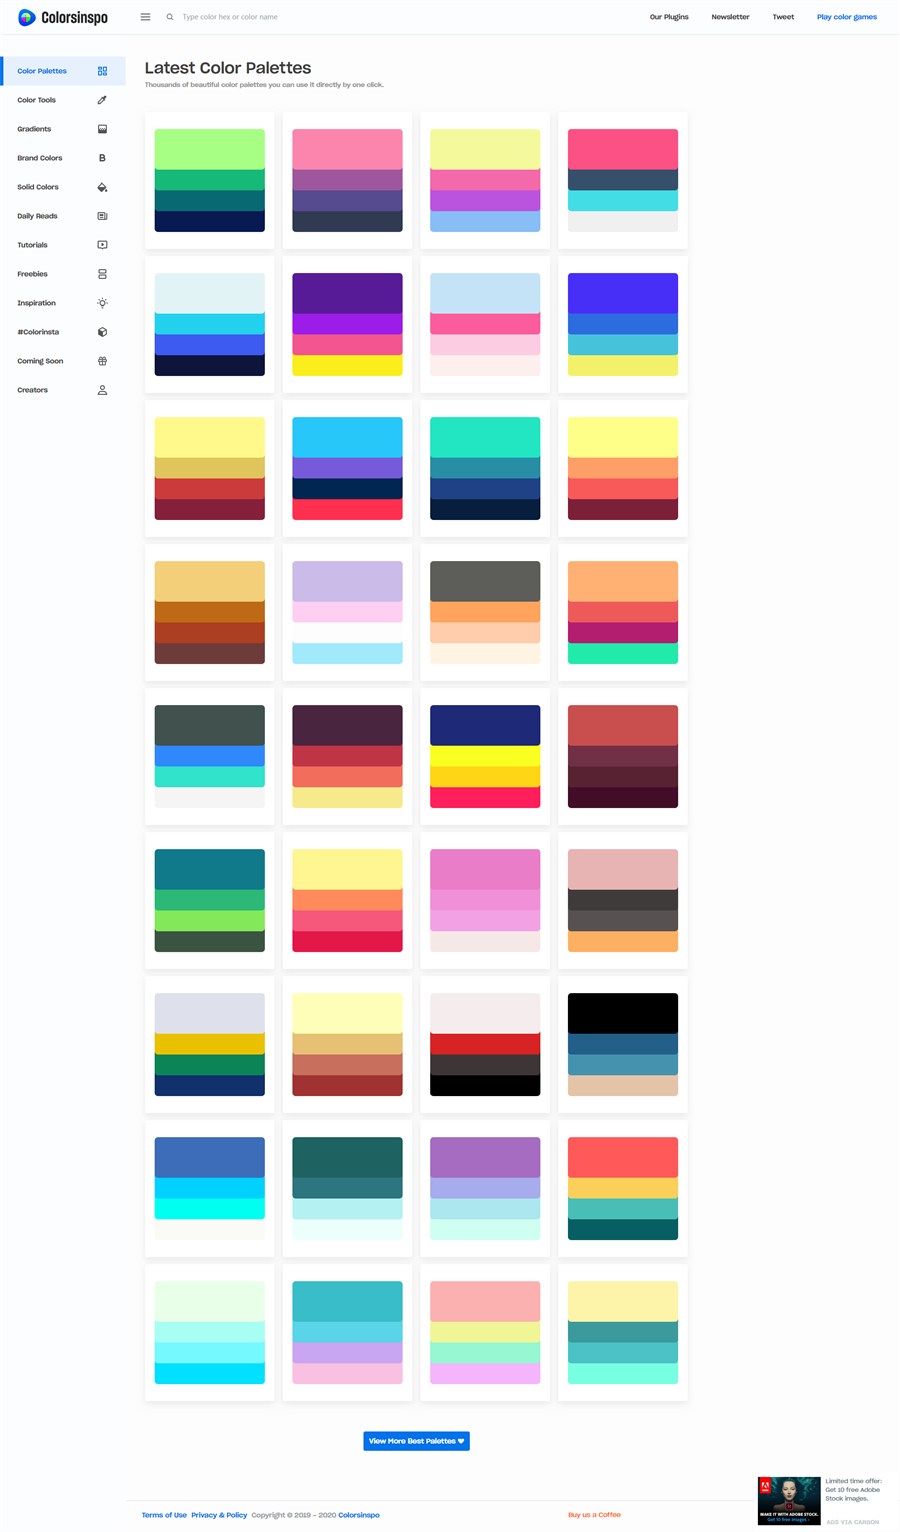 Colorsinspo - All in one resource for finding everything about colors _ Colorsinspo.png